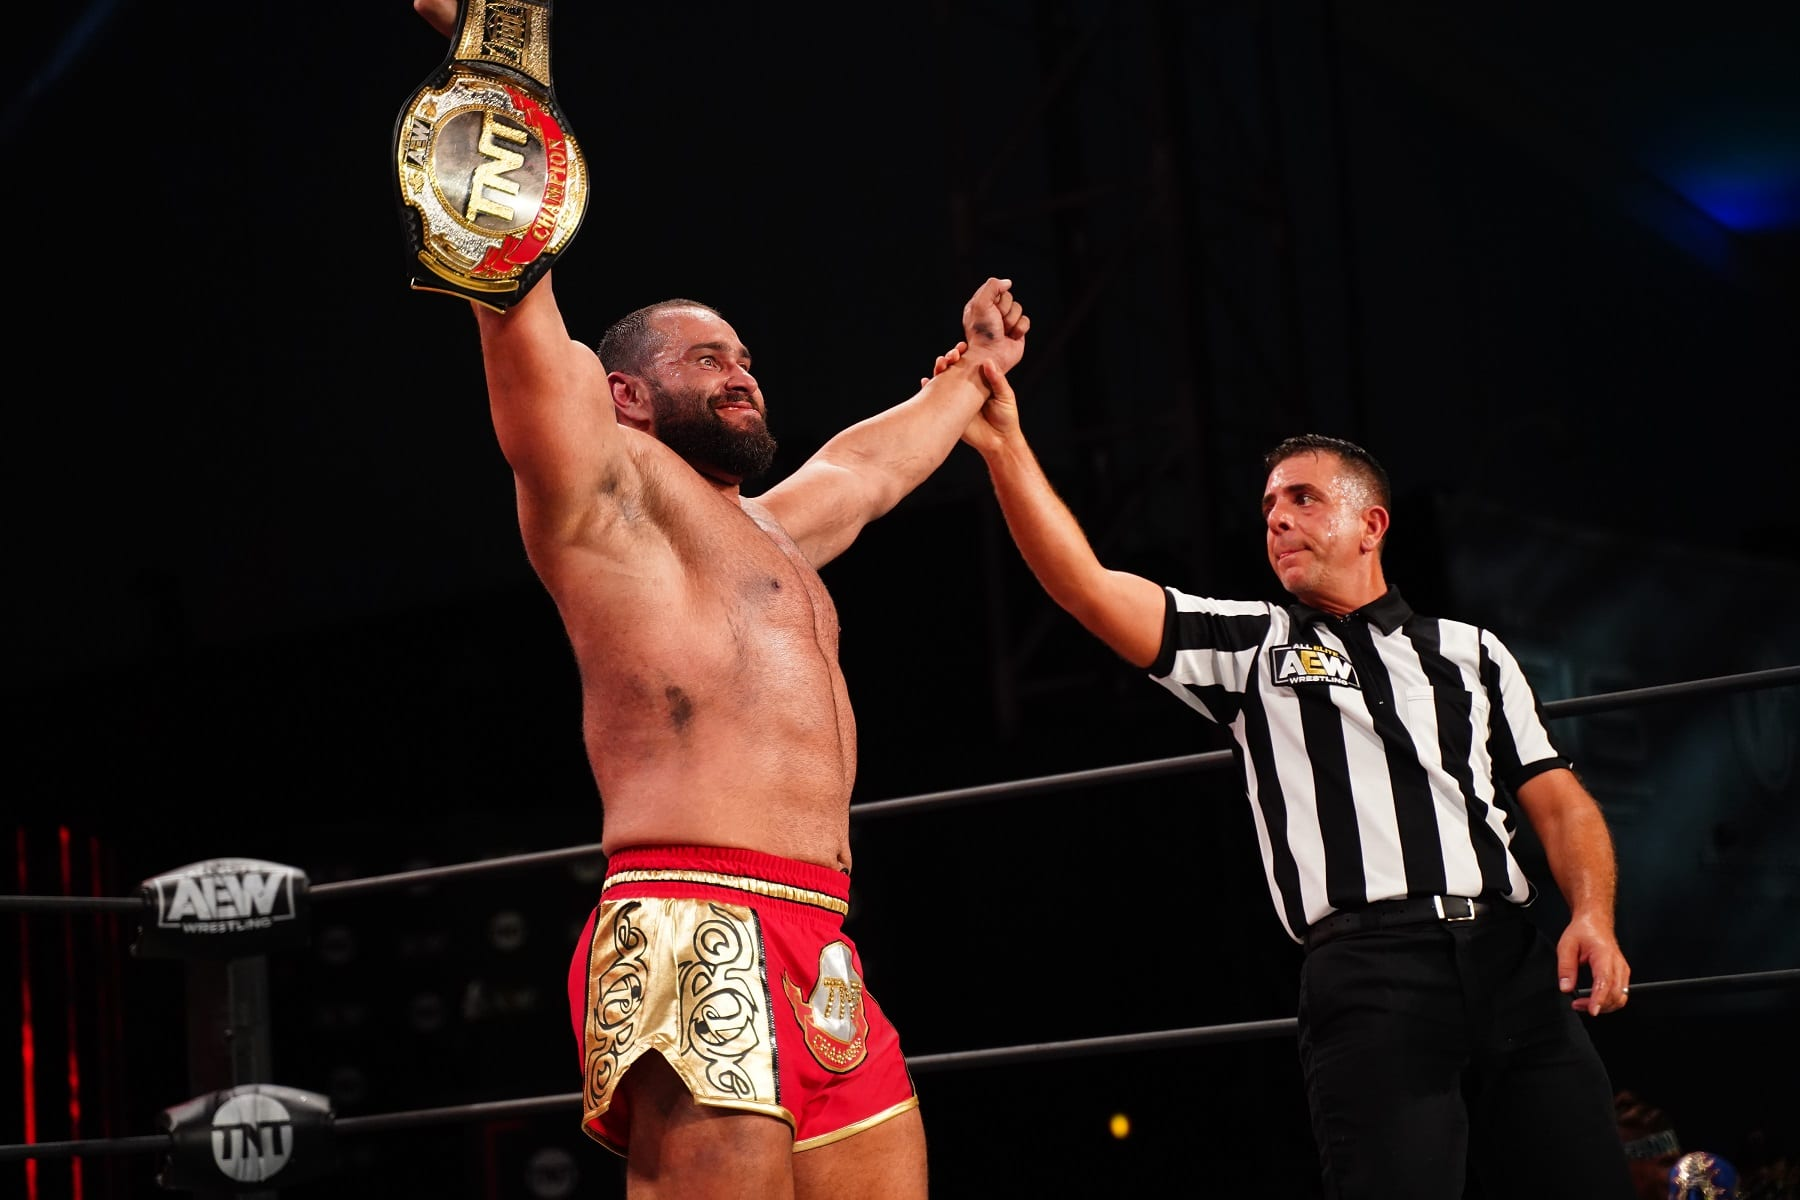 Miro Defending TNT Title At AEW Double Or Nothing